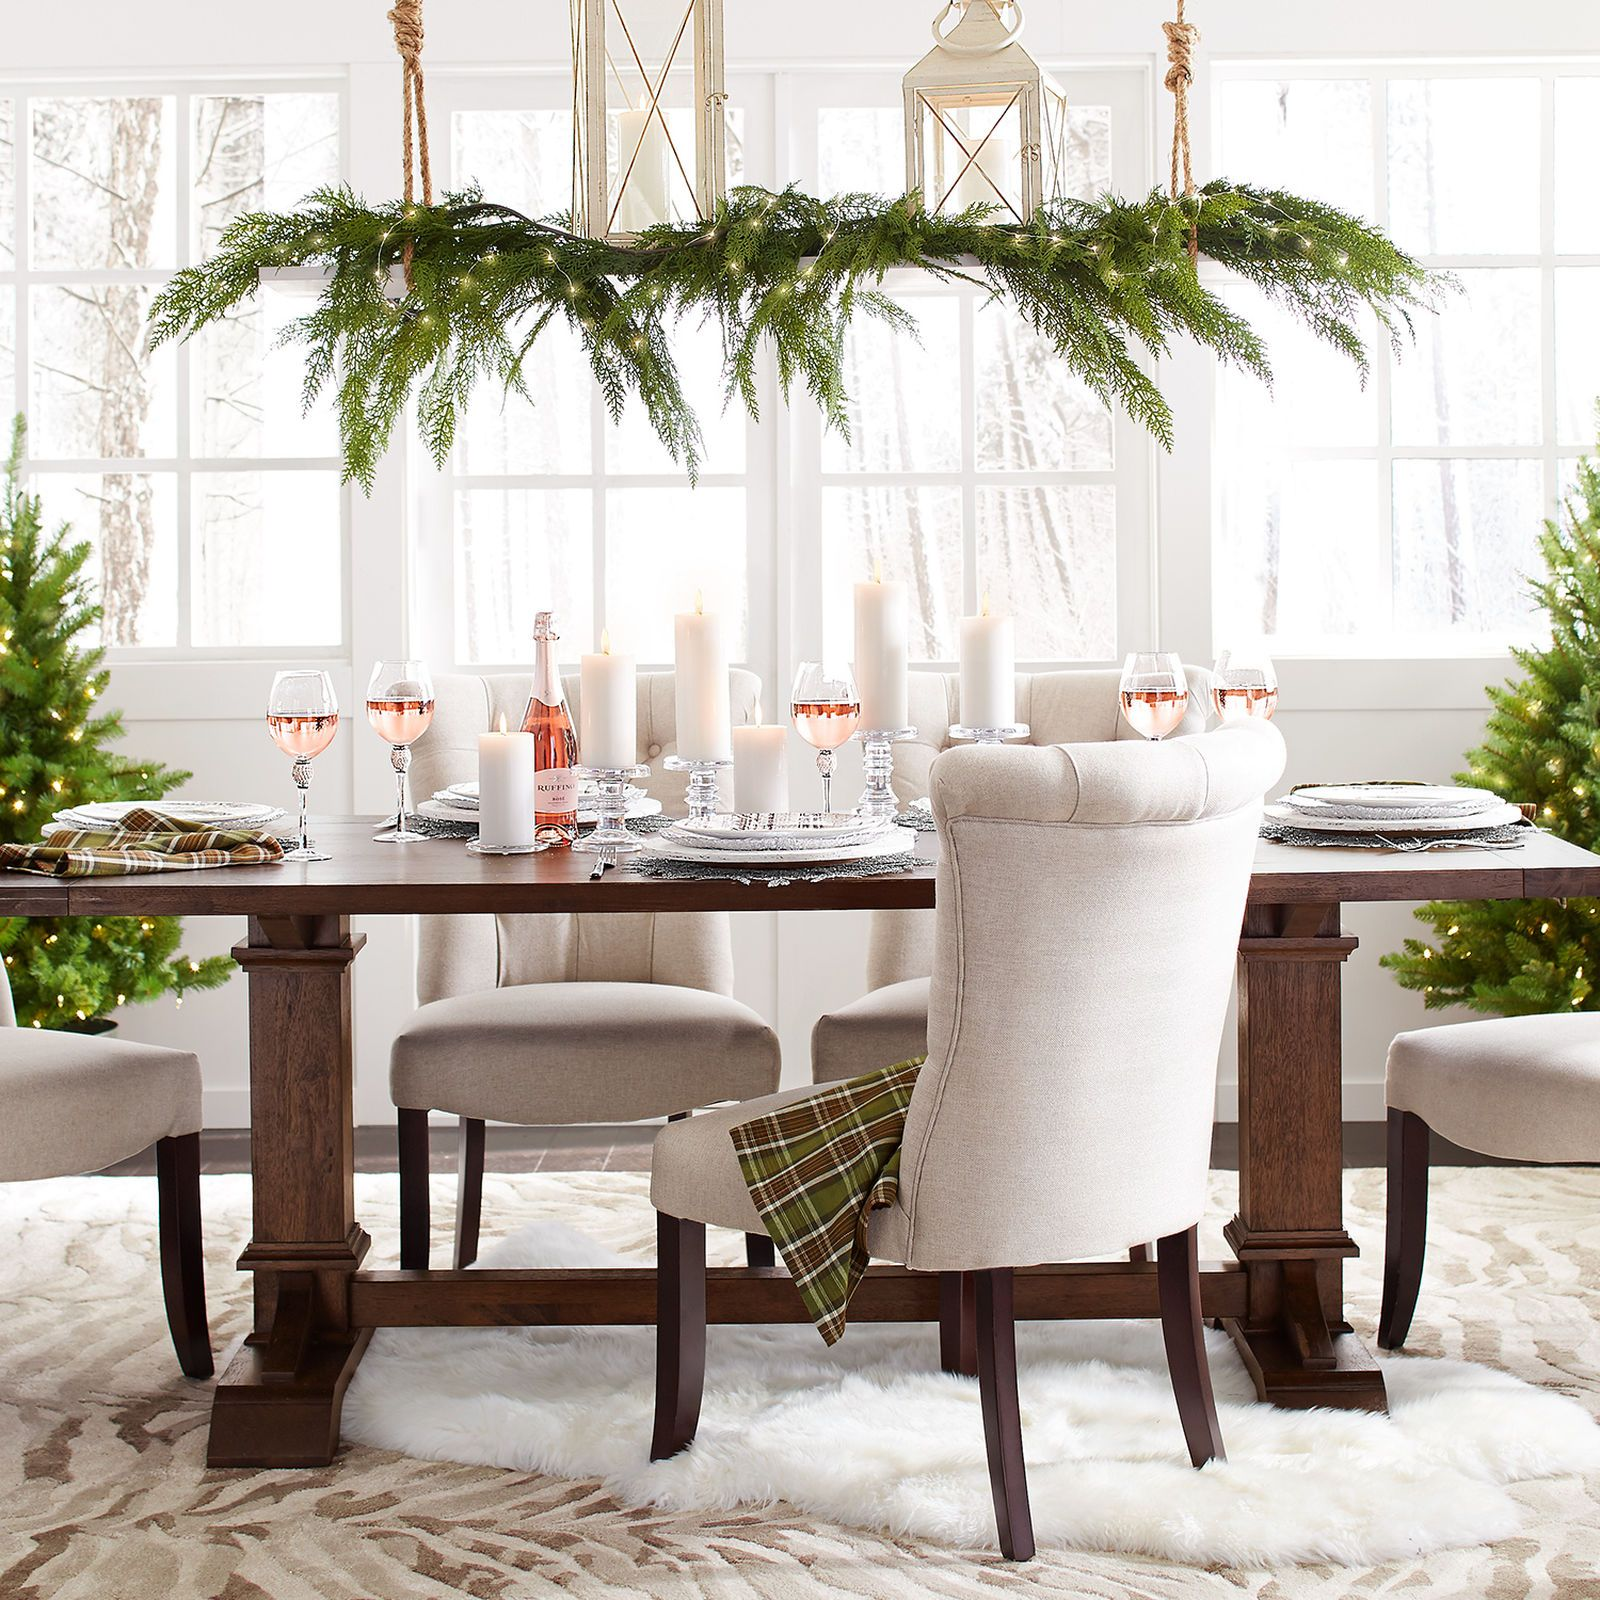 Pier 1 Imports Dawson Walnut Brown Dining Tables  Construction Captivating Pier One Dining Room Ideas Design Decoration